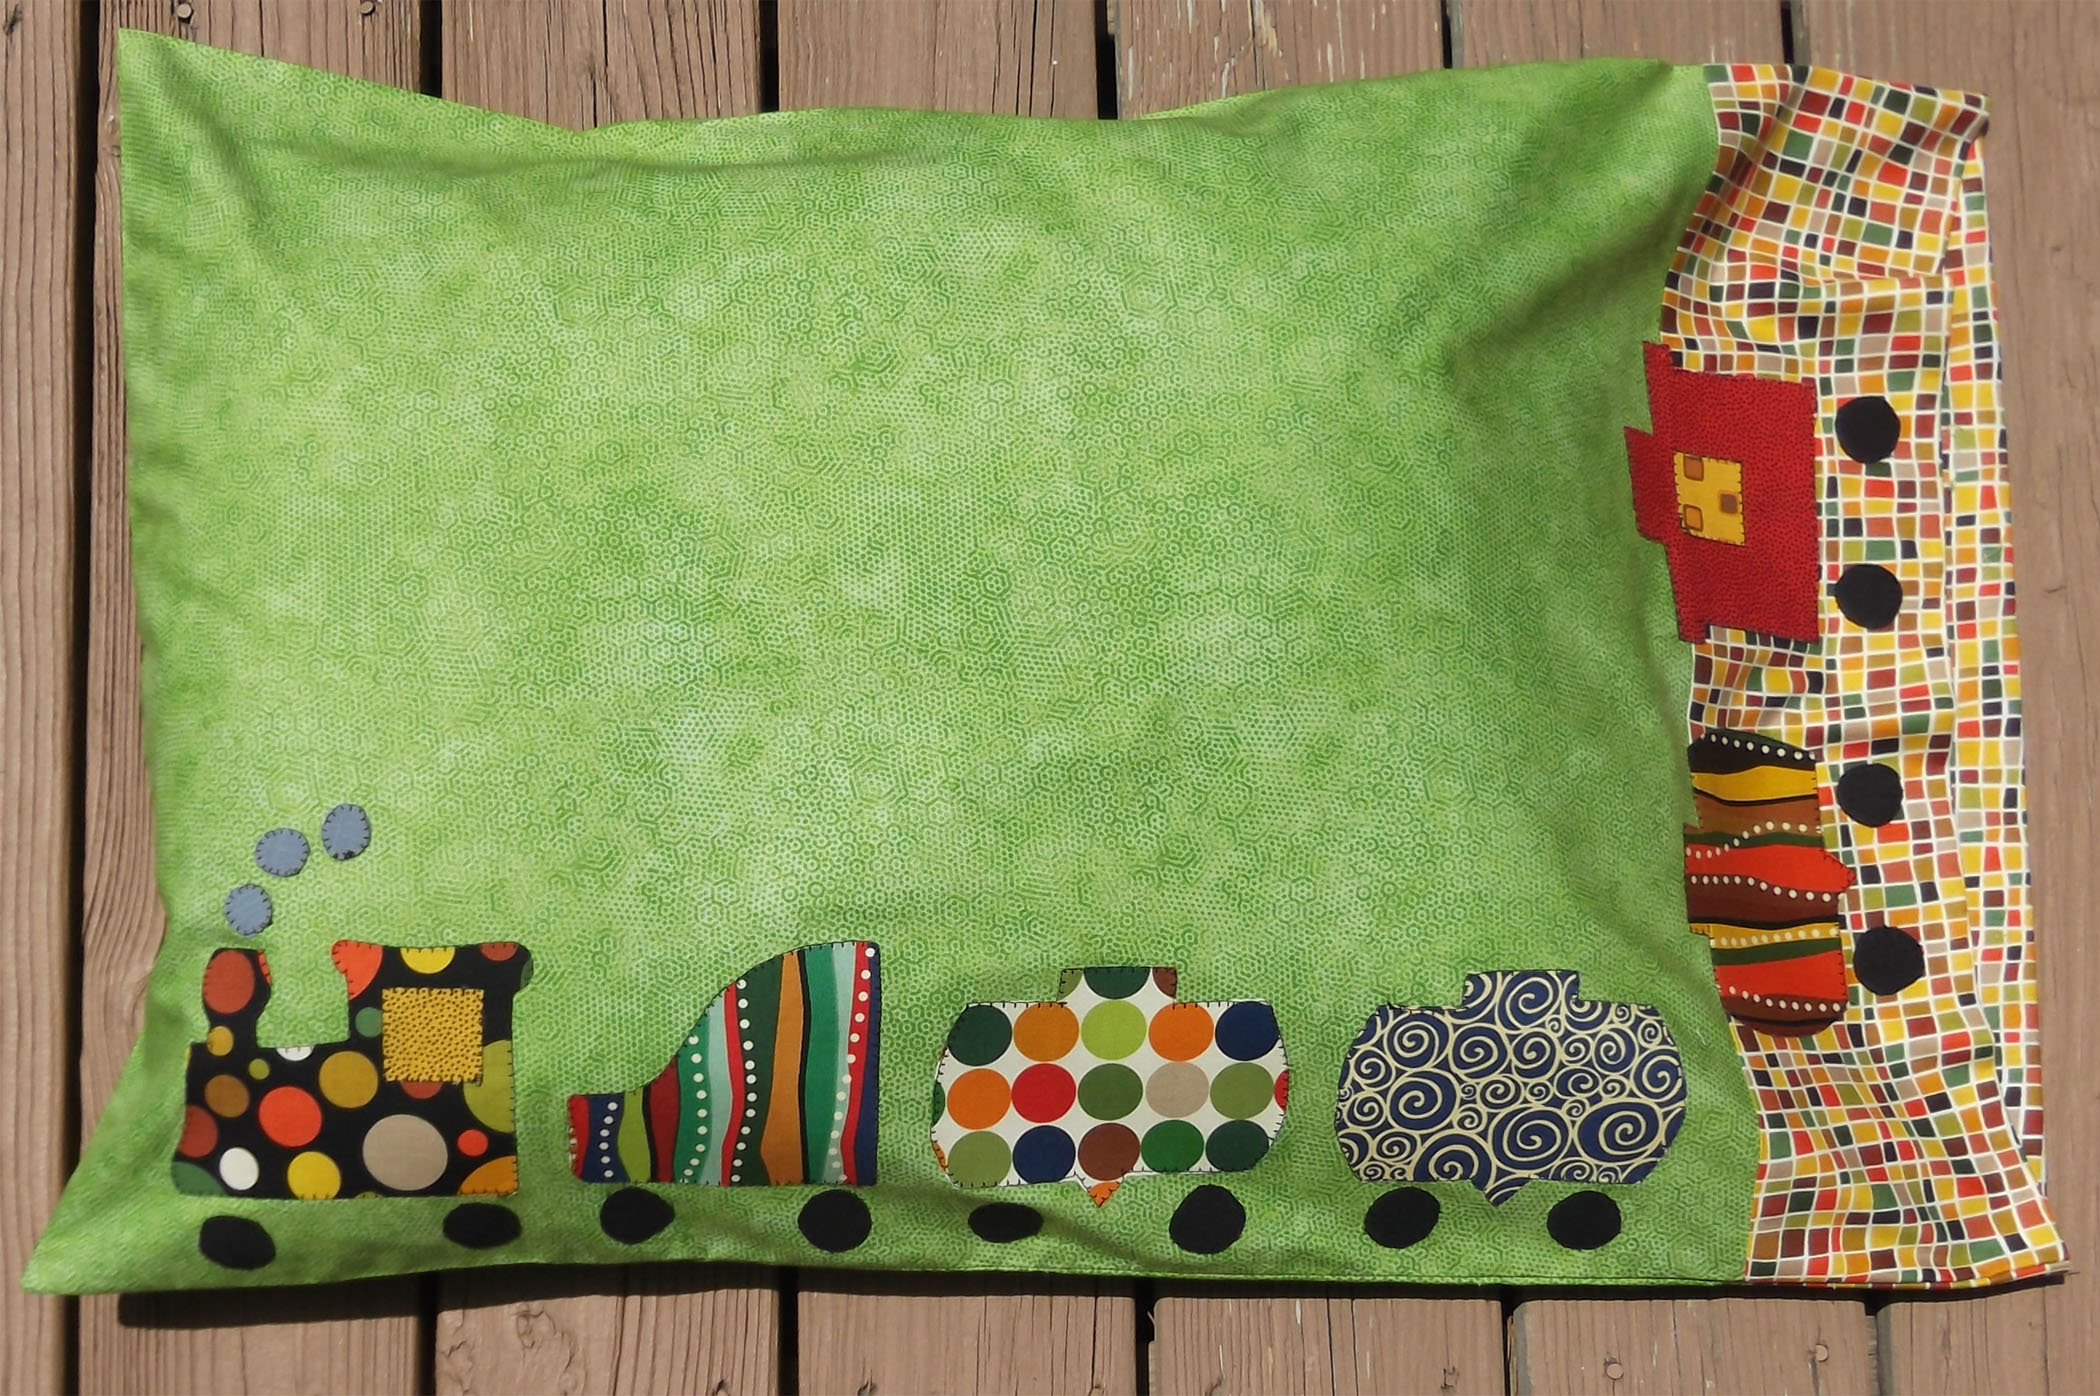 Andover Fabrics' Pillowcase